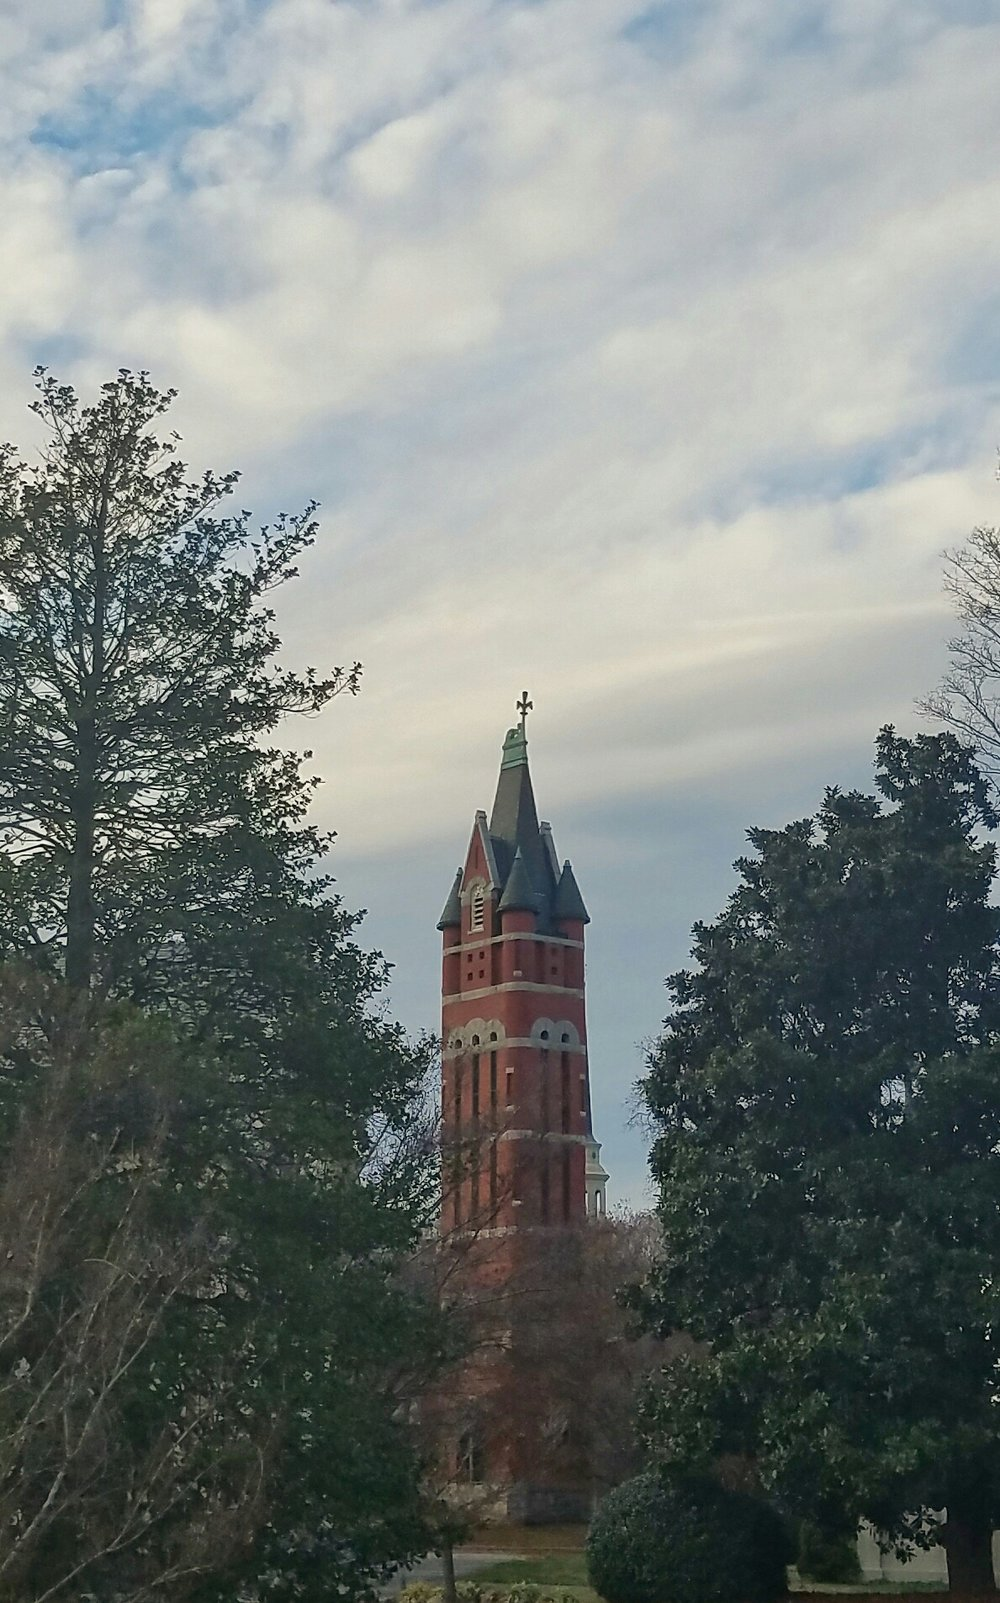 A photo of Salisbury's belltower taken on my smartphone on Dec. 8. it's one of my favorite buildings in the city.